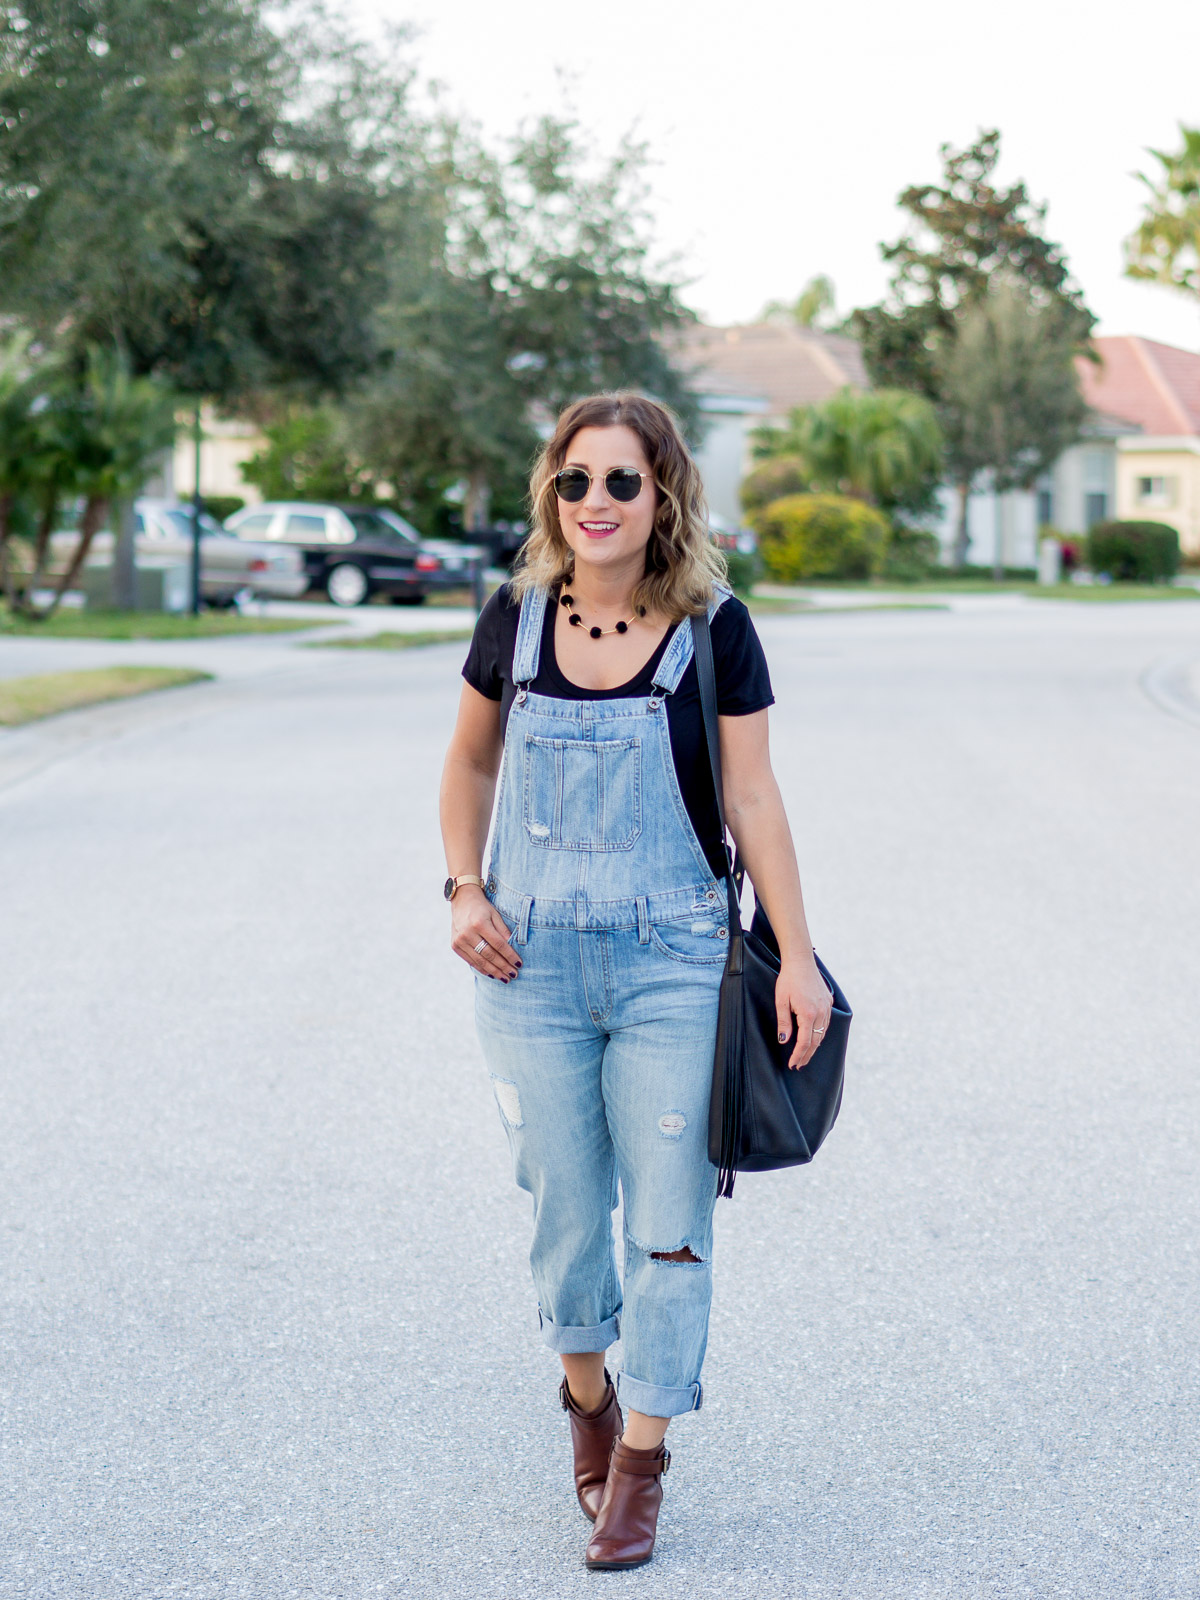 Jackie Goldhar is a petite fashion blogger from Toronto, showing how to wear ripped overalls